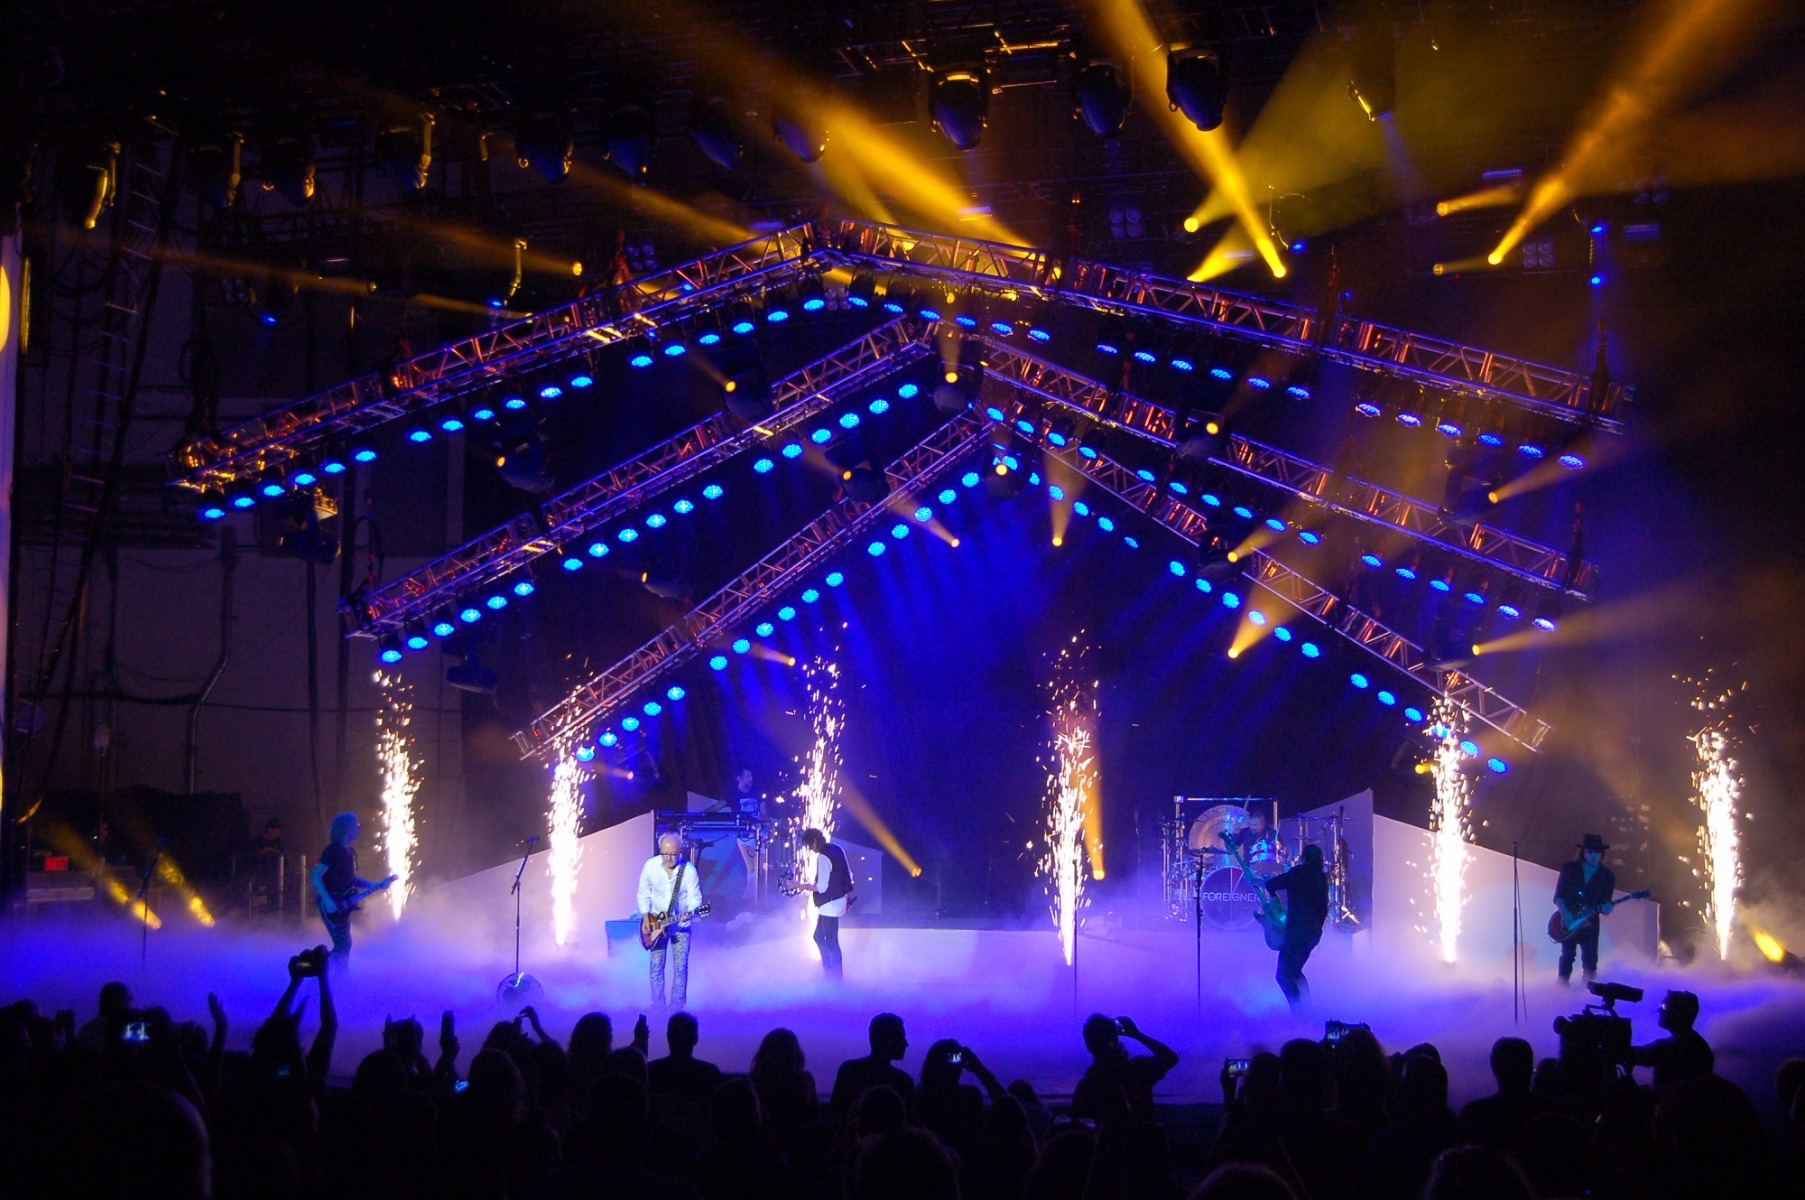 ... Tour appropriately featuring an old-school lighting design by Dan Lastovka using Elation Arena Par Zoom™ LED wash lights supplied by See Factor. & See Factor Supplies Elation Arena Pars for Foreigner 40th ...